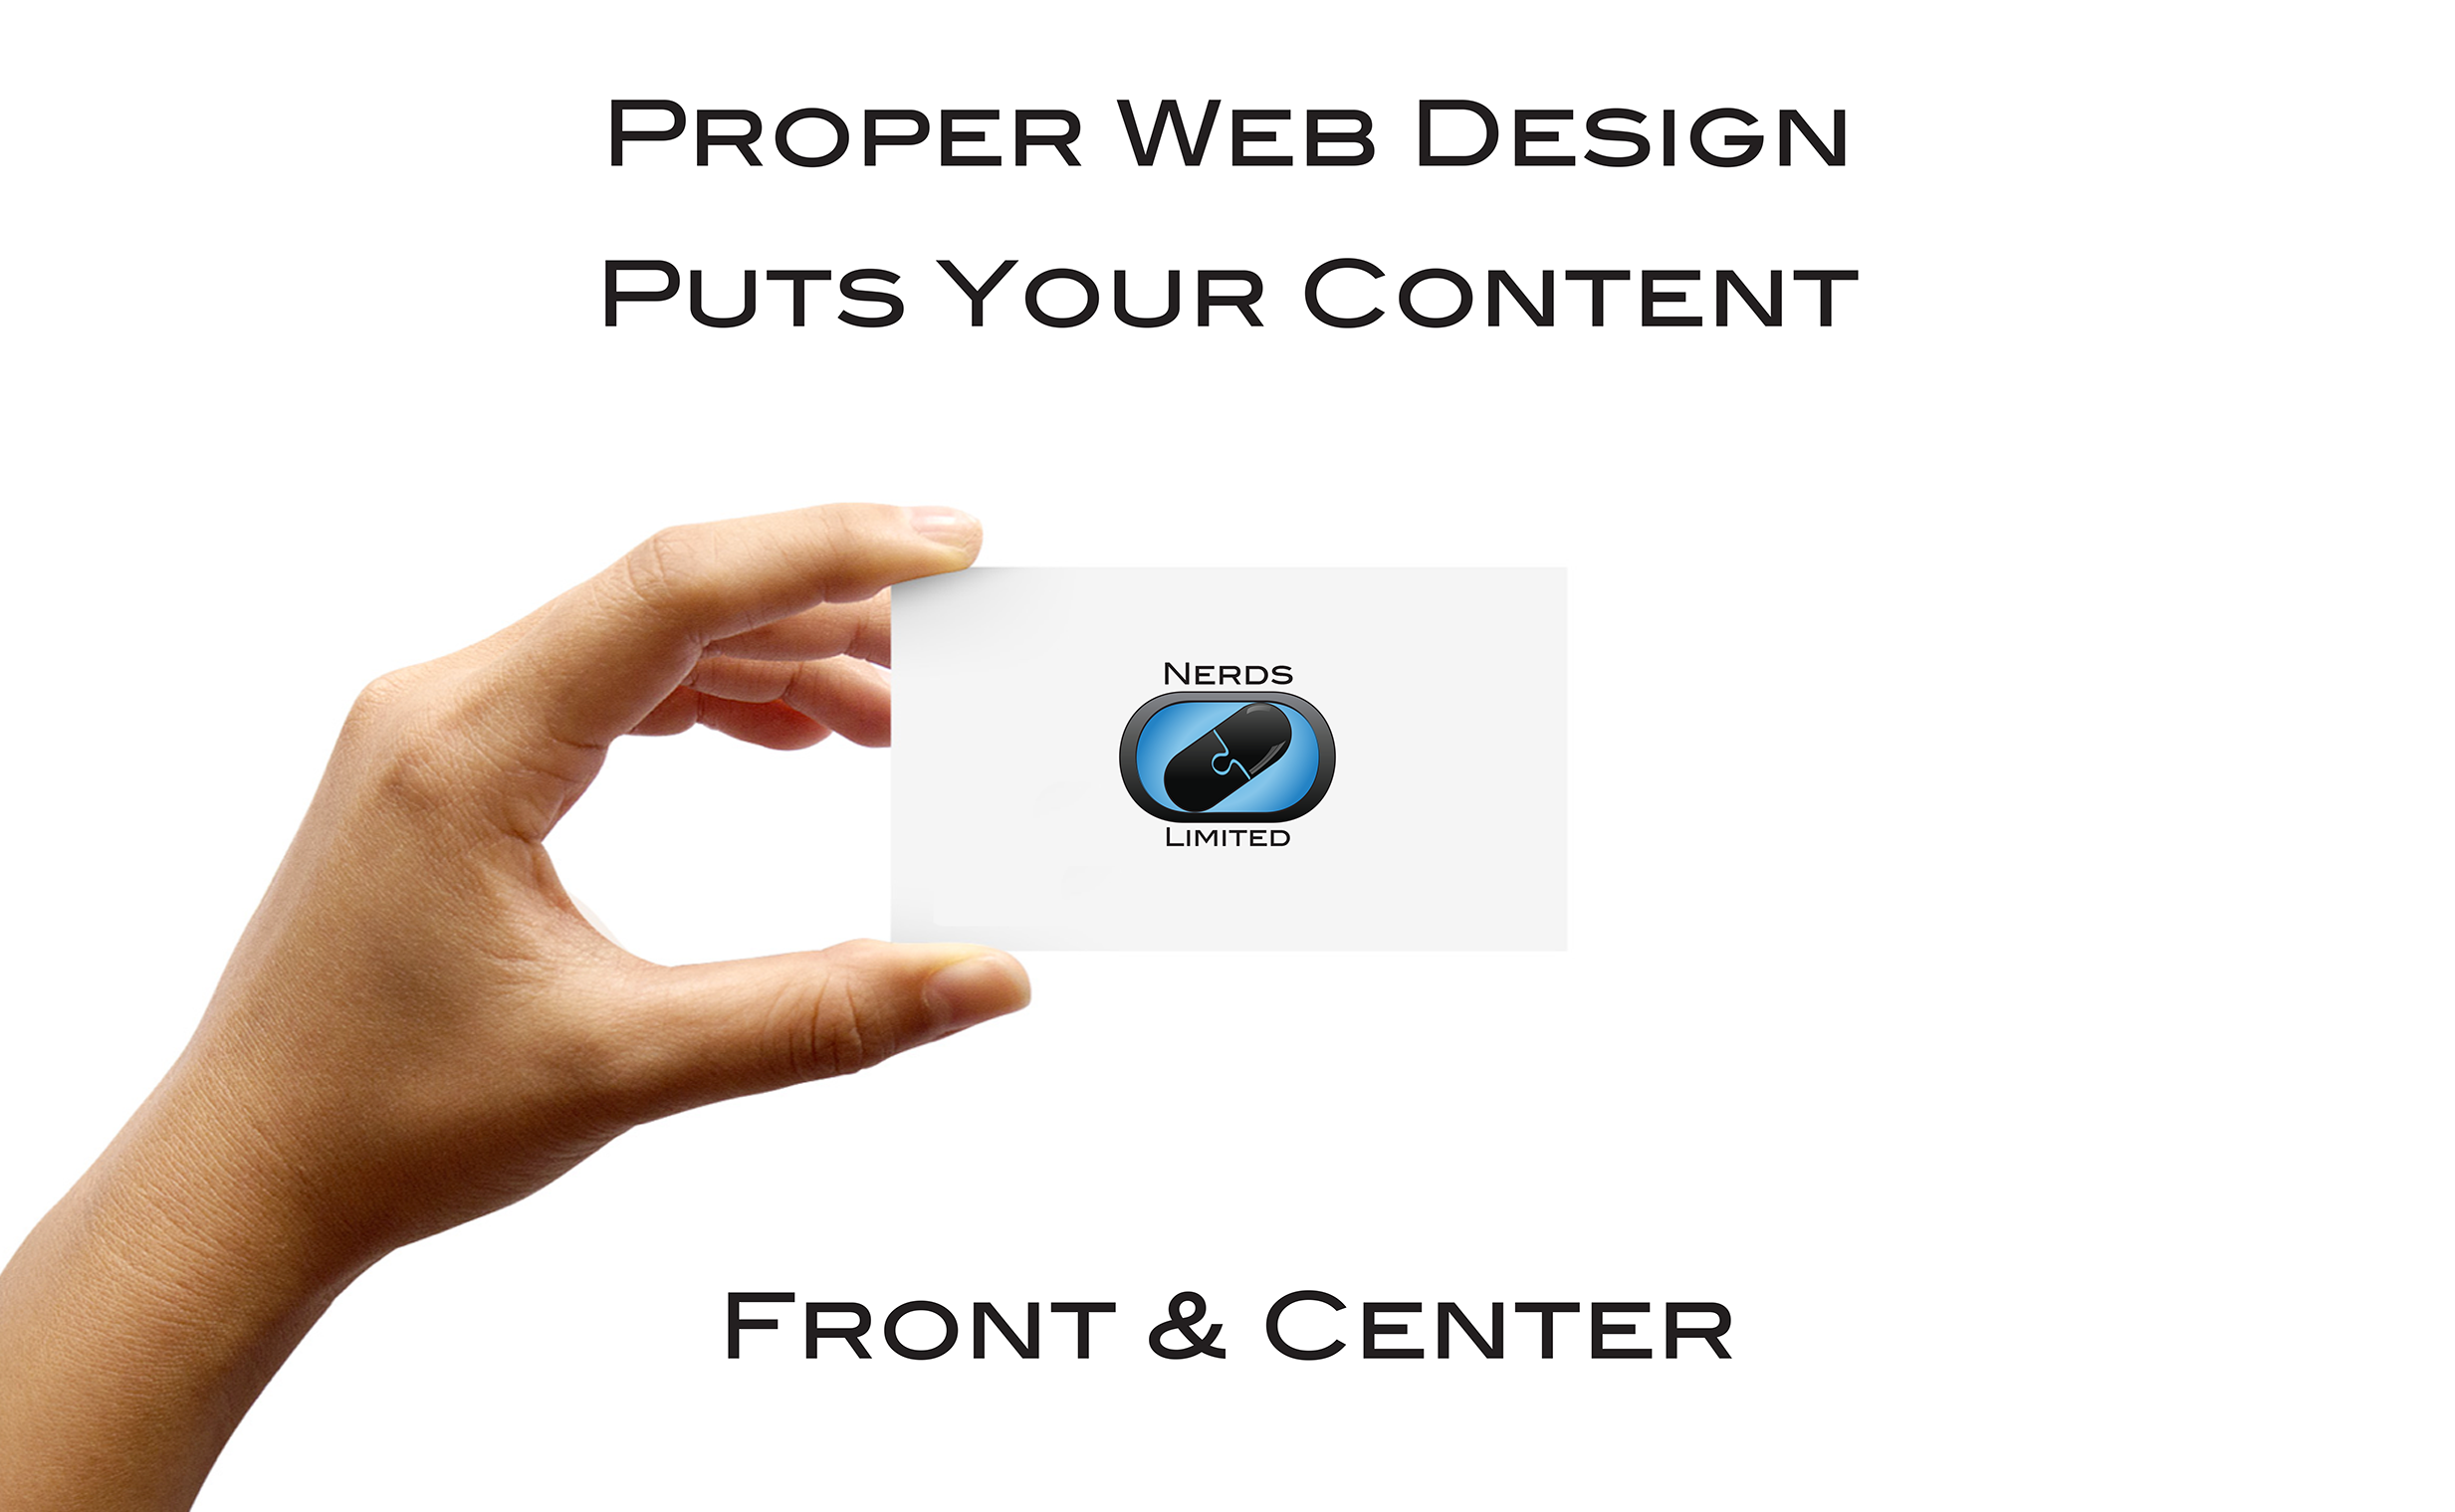 Proper Web design puts your content front and center.